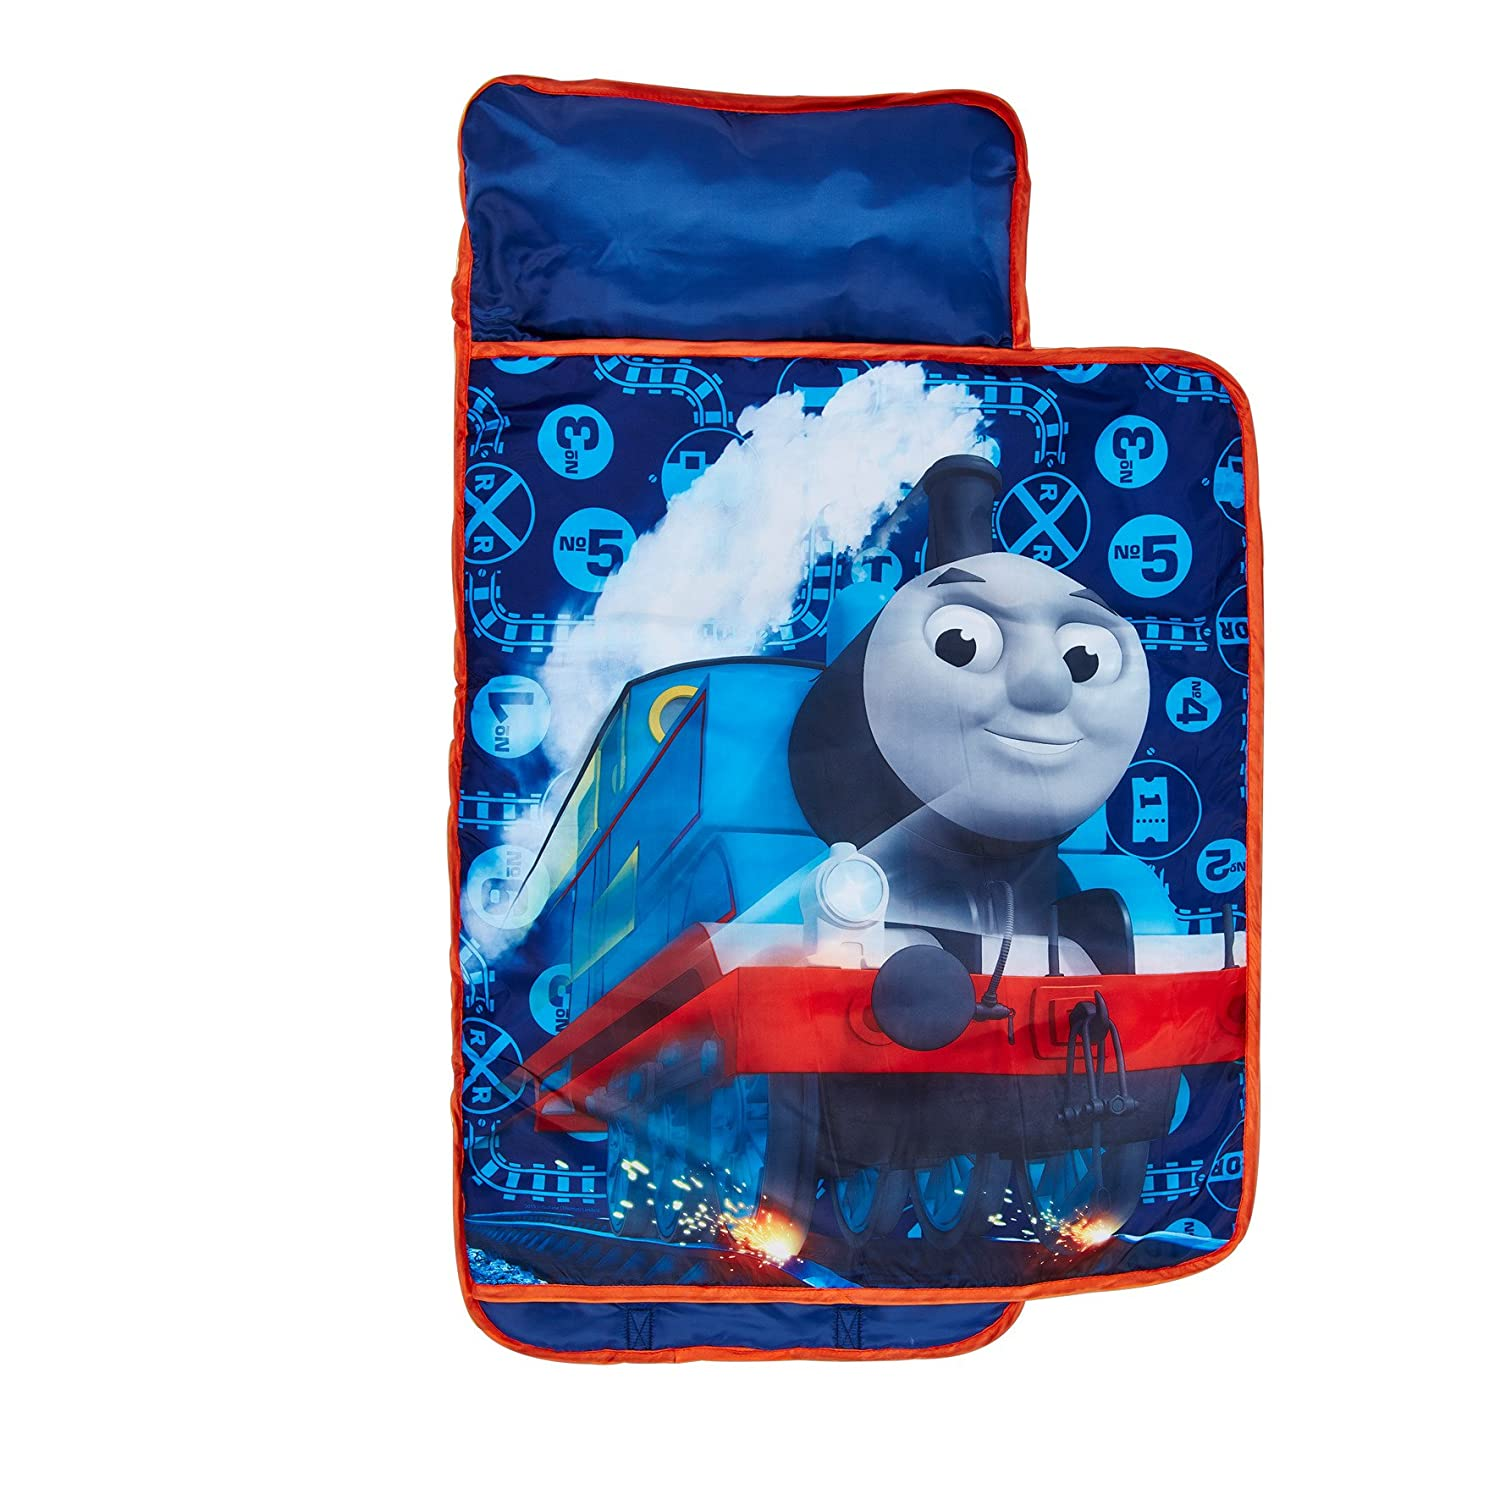 Thomas The Tank Engine CosyWrap Nap Blanket by Readybed   B01A5JK7P8